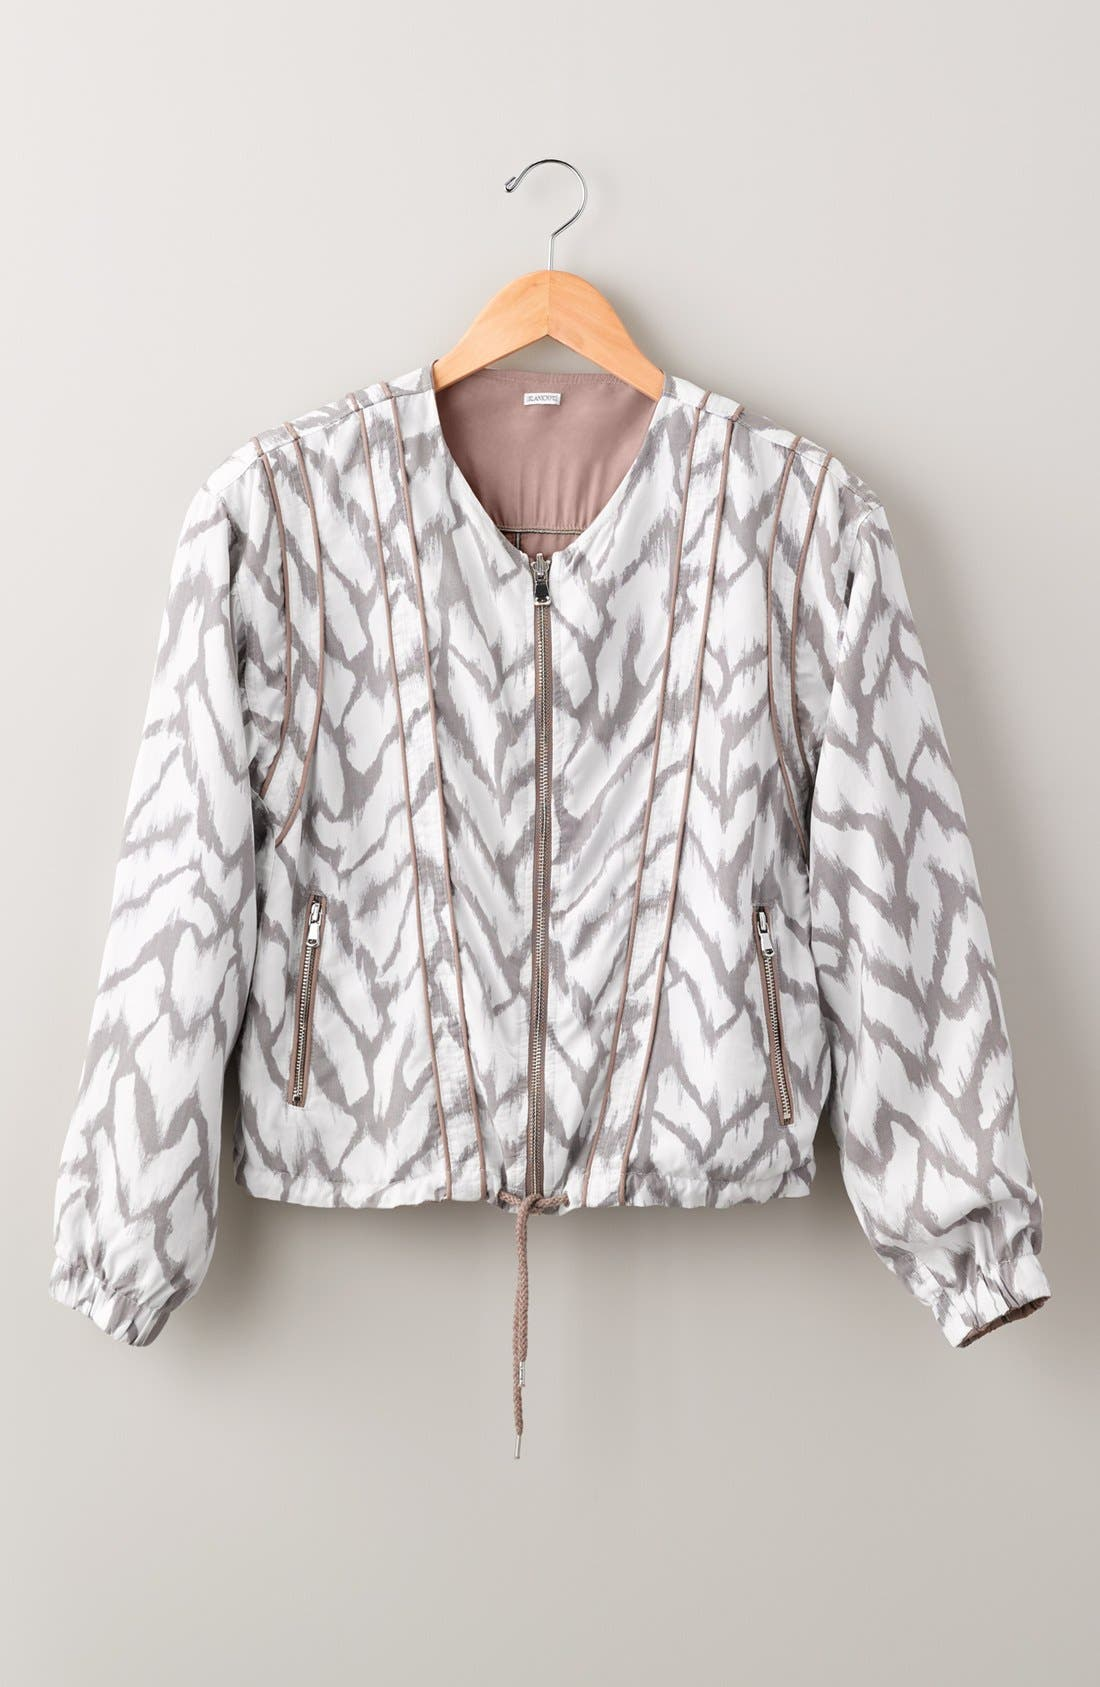 Deep Truth Reversible Jacket,                             Alternate thumbnail 2, color,                             Deep Truth Taupe/ White Print